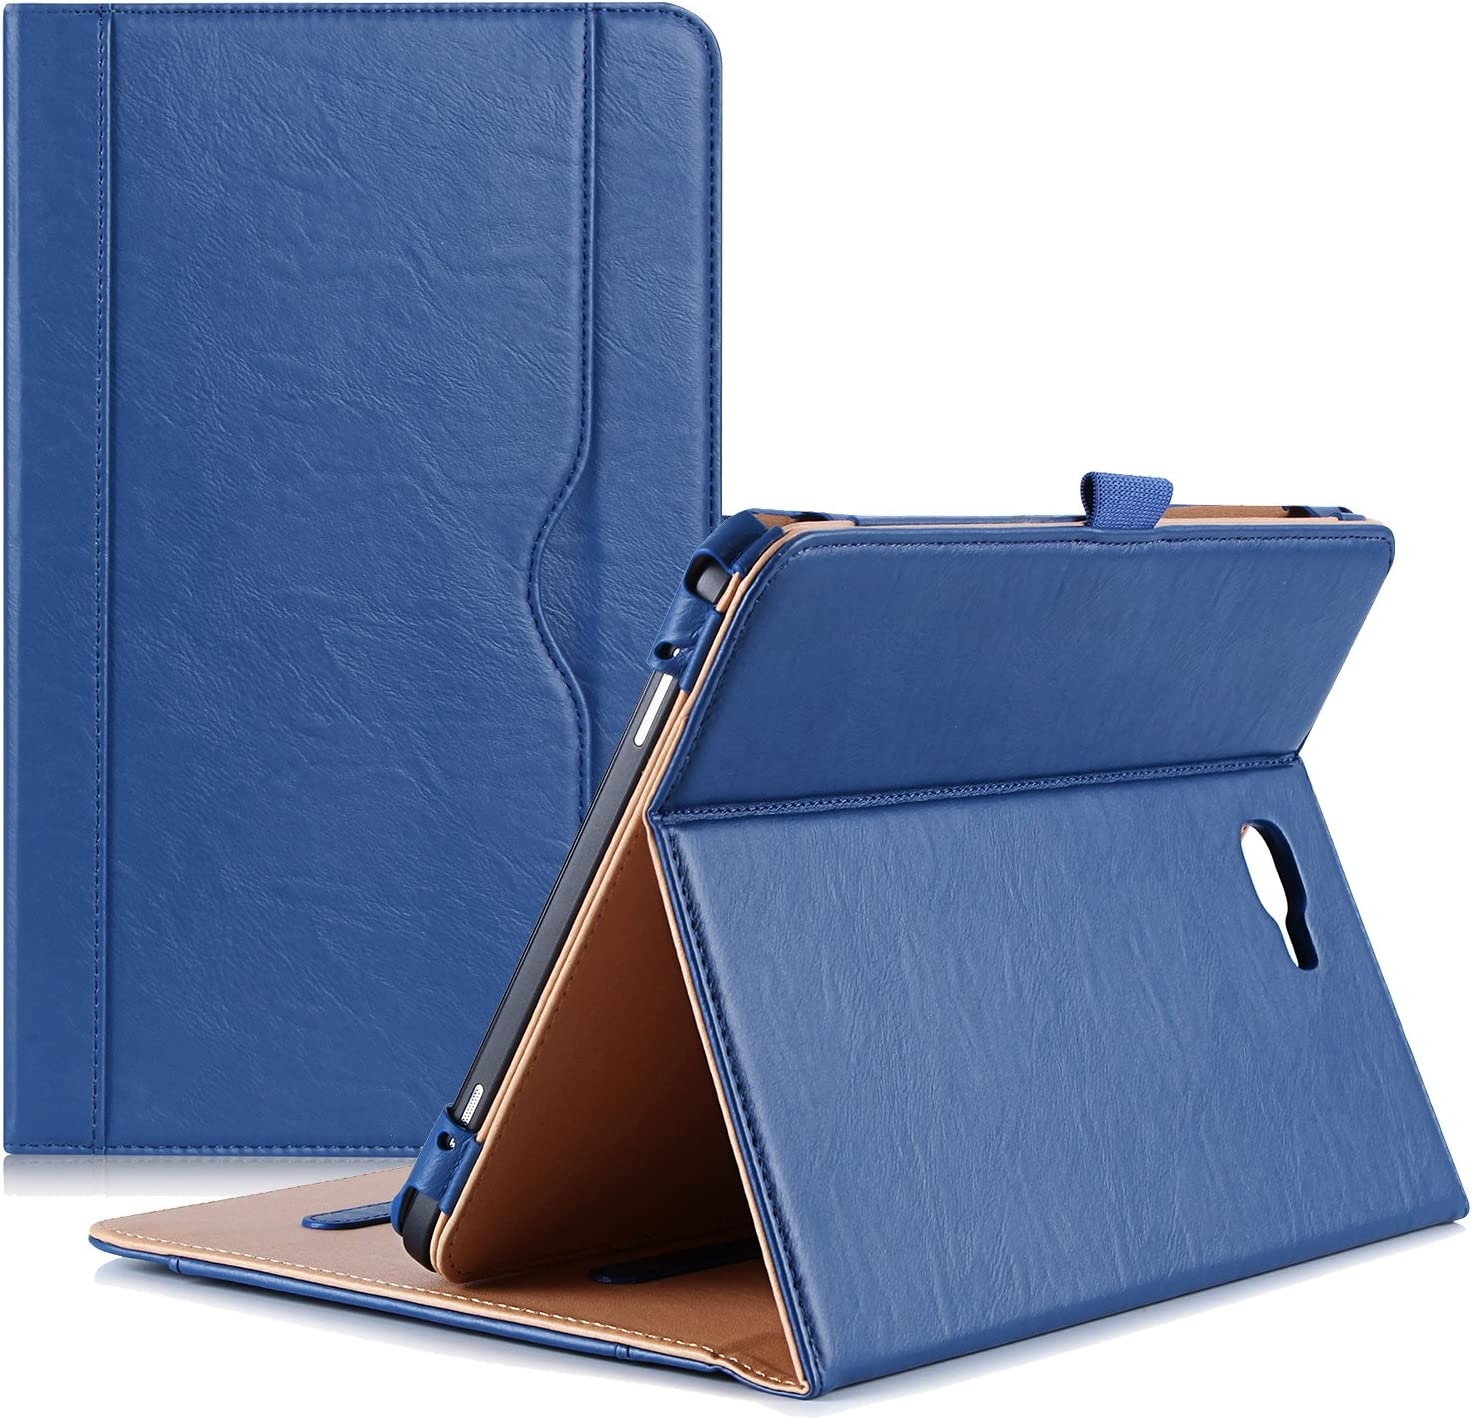 """ProCase Galaxy Tab A 10.1 Case 2016 - Stand Folio Case Cover for Galaxy Tab A 10.1"""" Tablet SM-T580 T585 T587 (NO S Pen Version), with Multiple Viewing Angles, Document Card Pocket - Navy"""